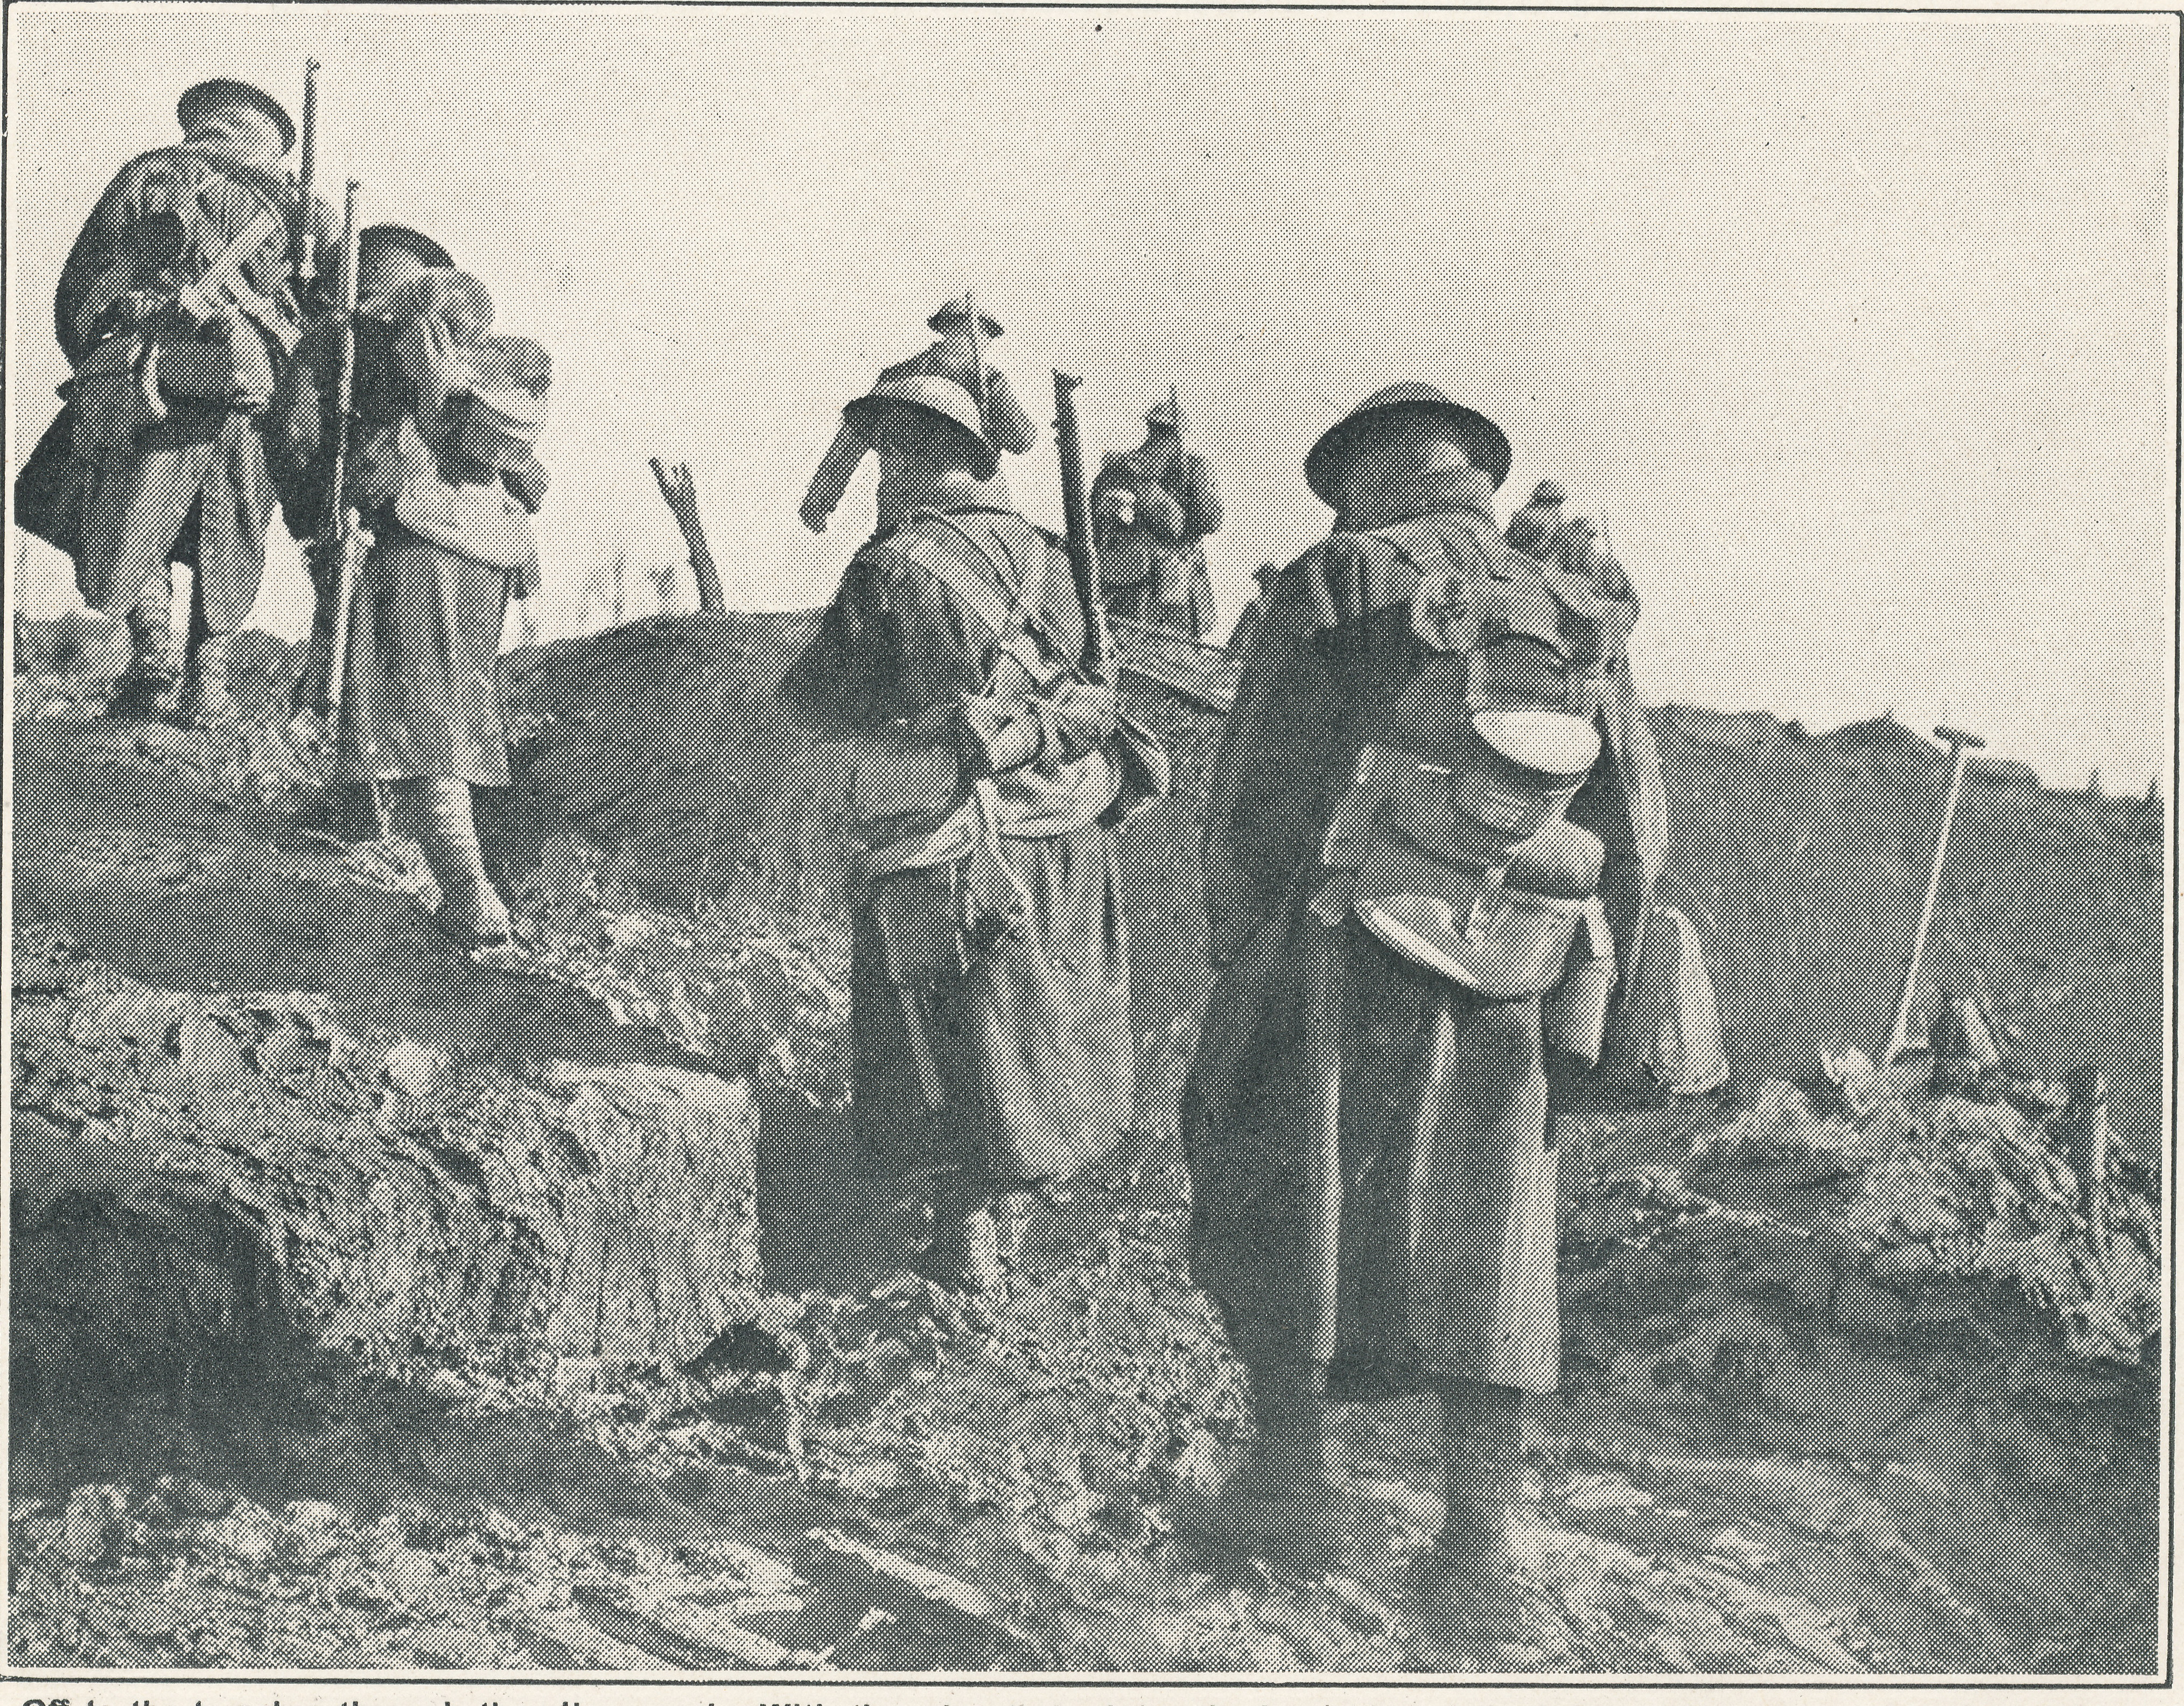 British soldiers walking through the trenches of WWI. Picture from the Forces War Records library.